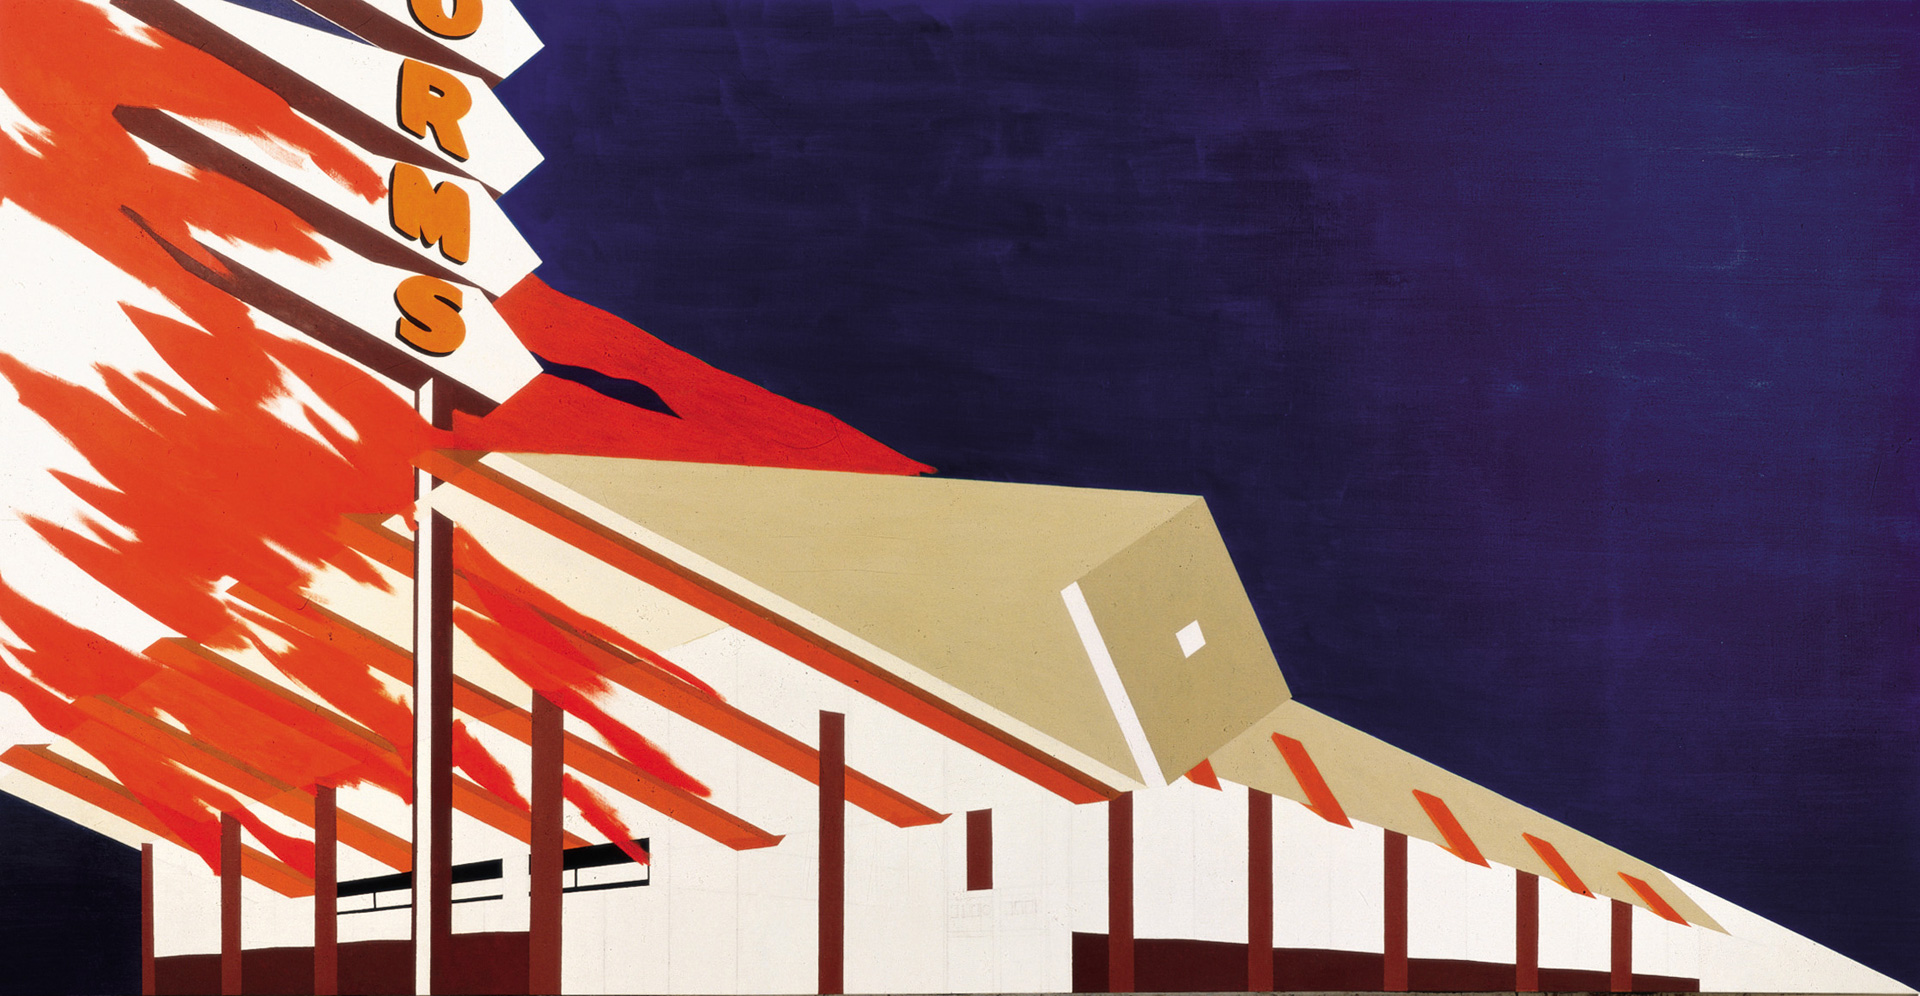 Ed Ruscha - Norm's, La Cienega, on Fire, 1964, oil and pencil on canvas